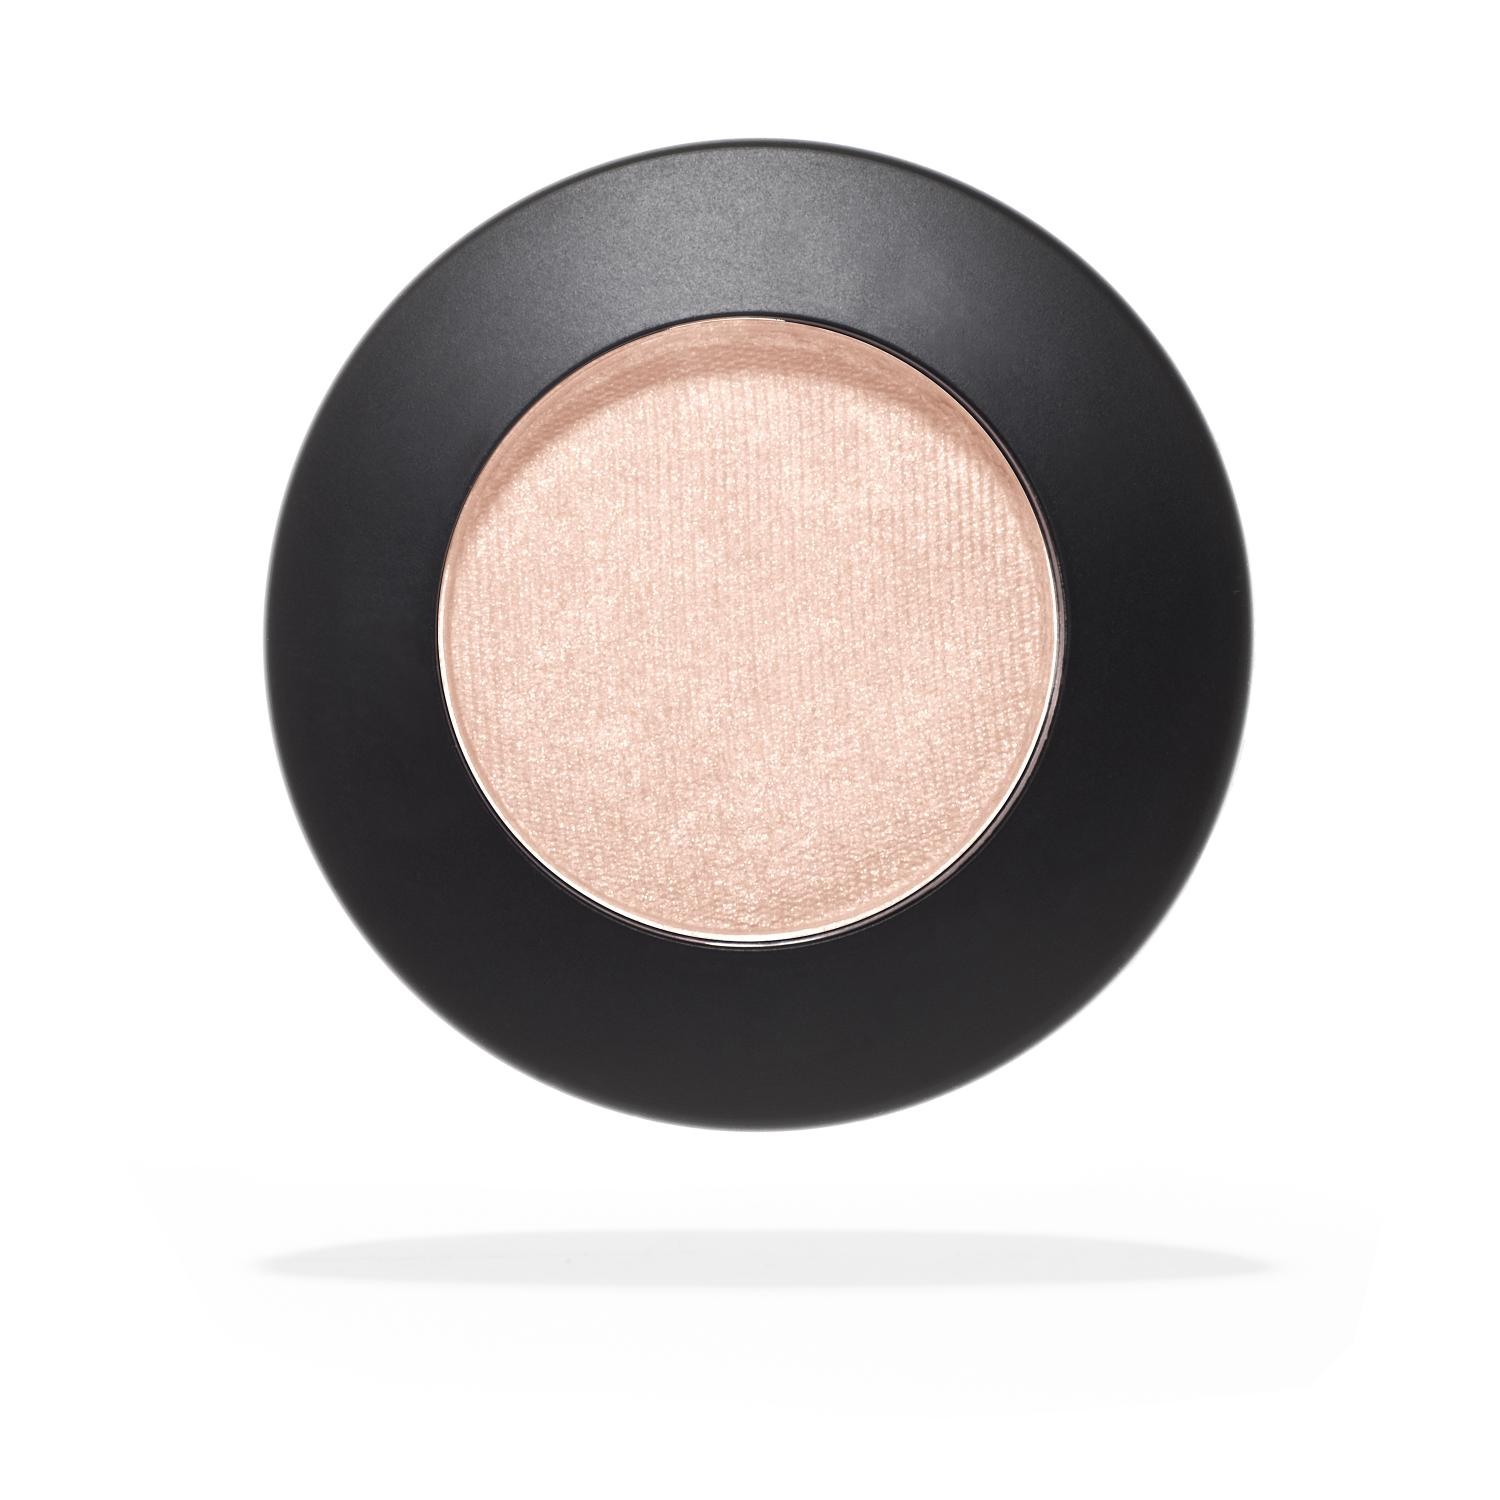 LAUR - MICRONIZED EYE SHADOW